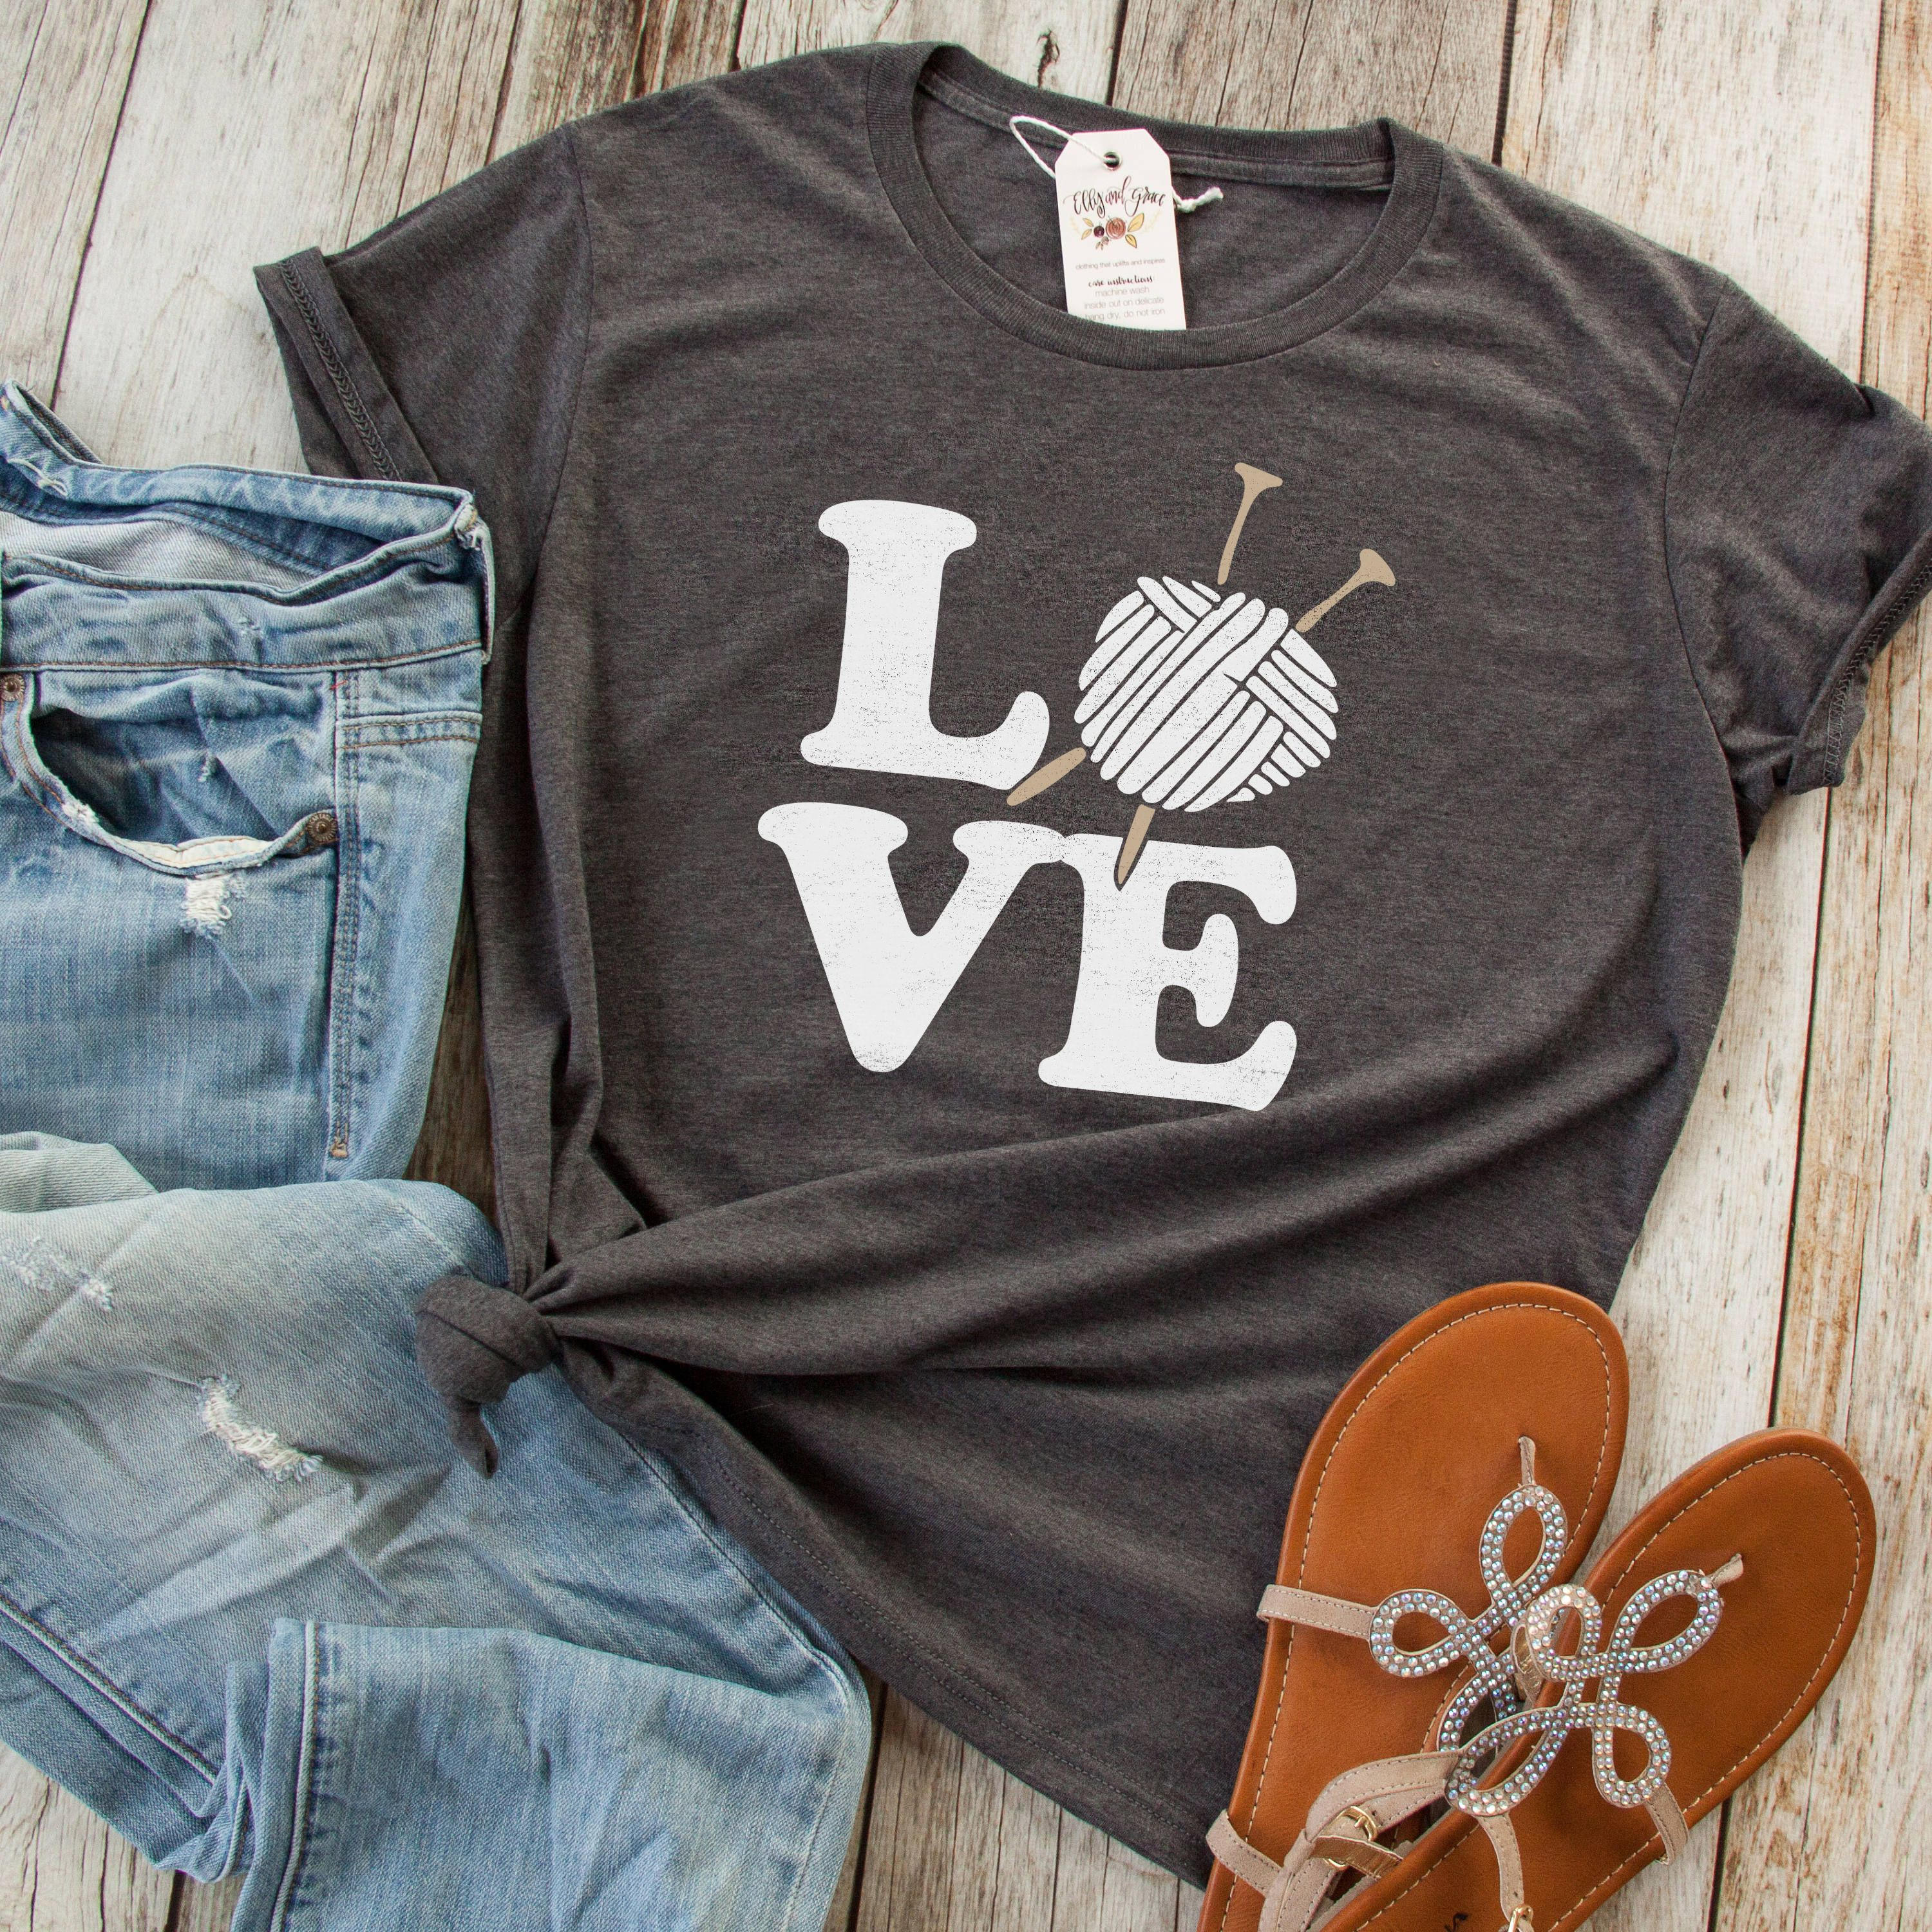 Love Crochet Great Gift For Crochet Lovers Crocheters Tees Mugs Bags Shoes Great Gift For Yoursel Crochet Lovers Crochet Baby Jacket Crochet Gifts